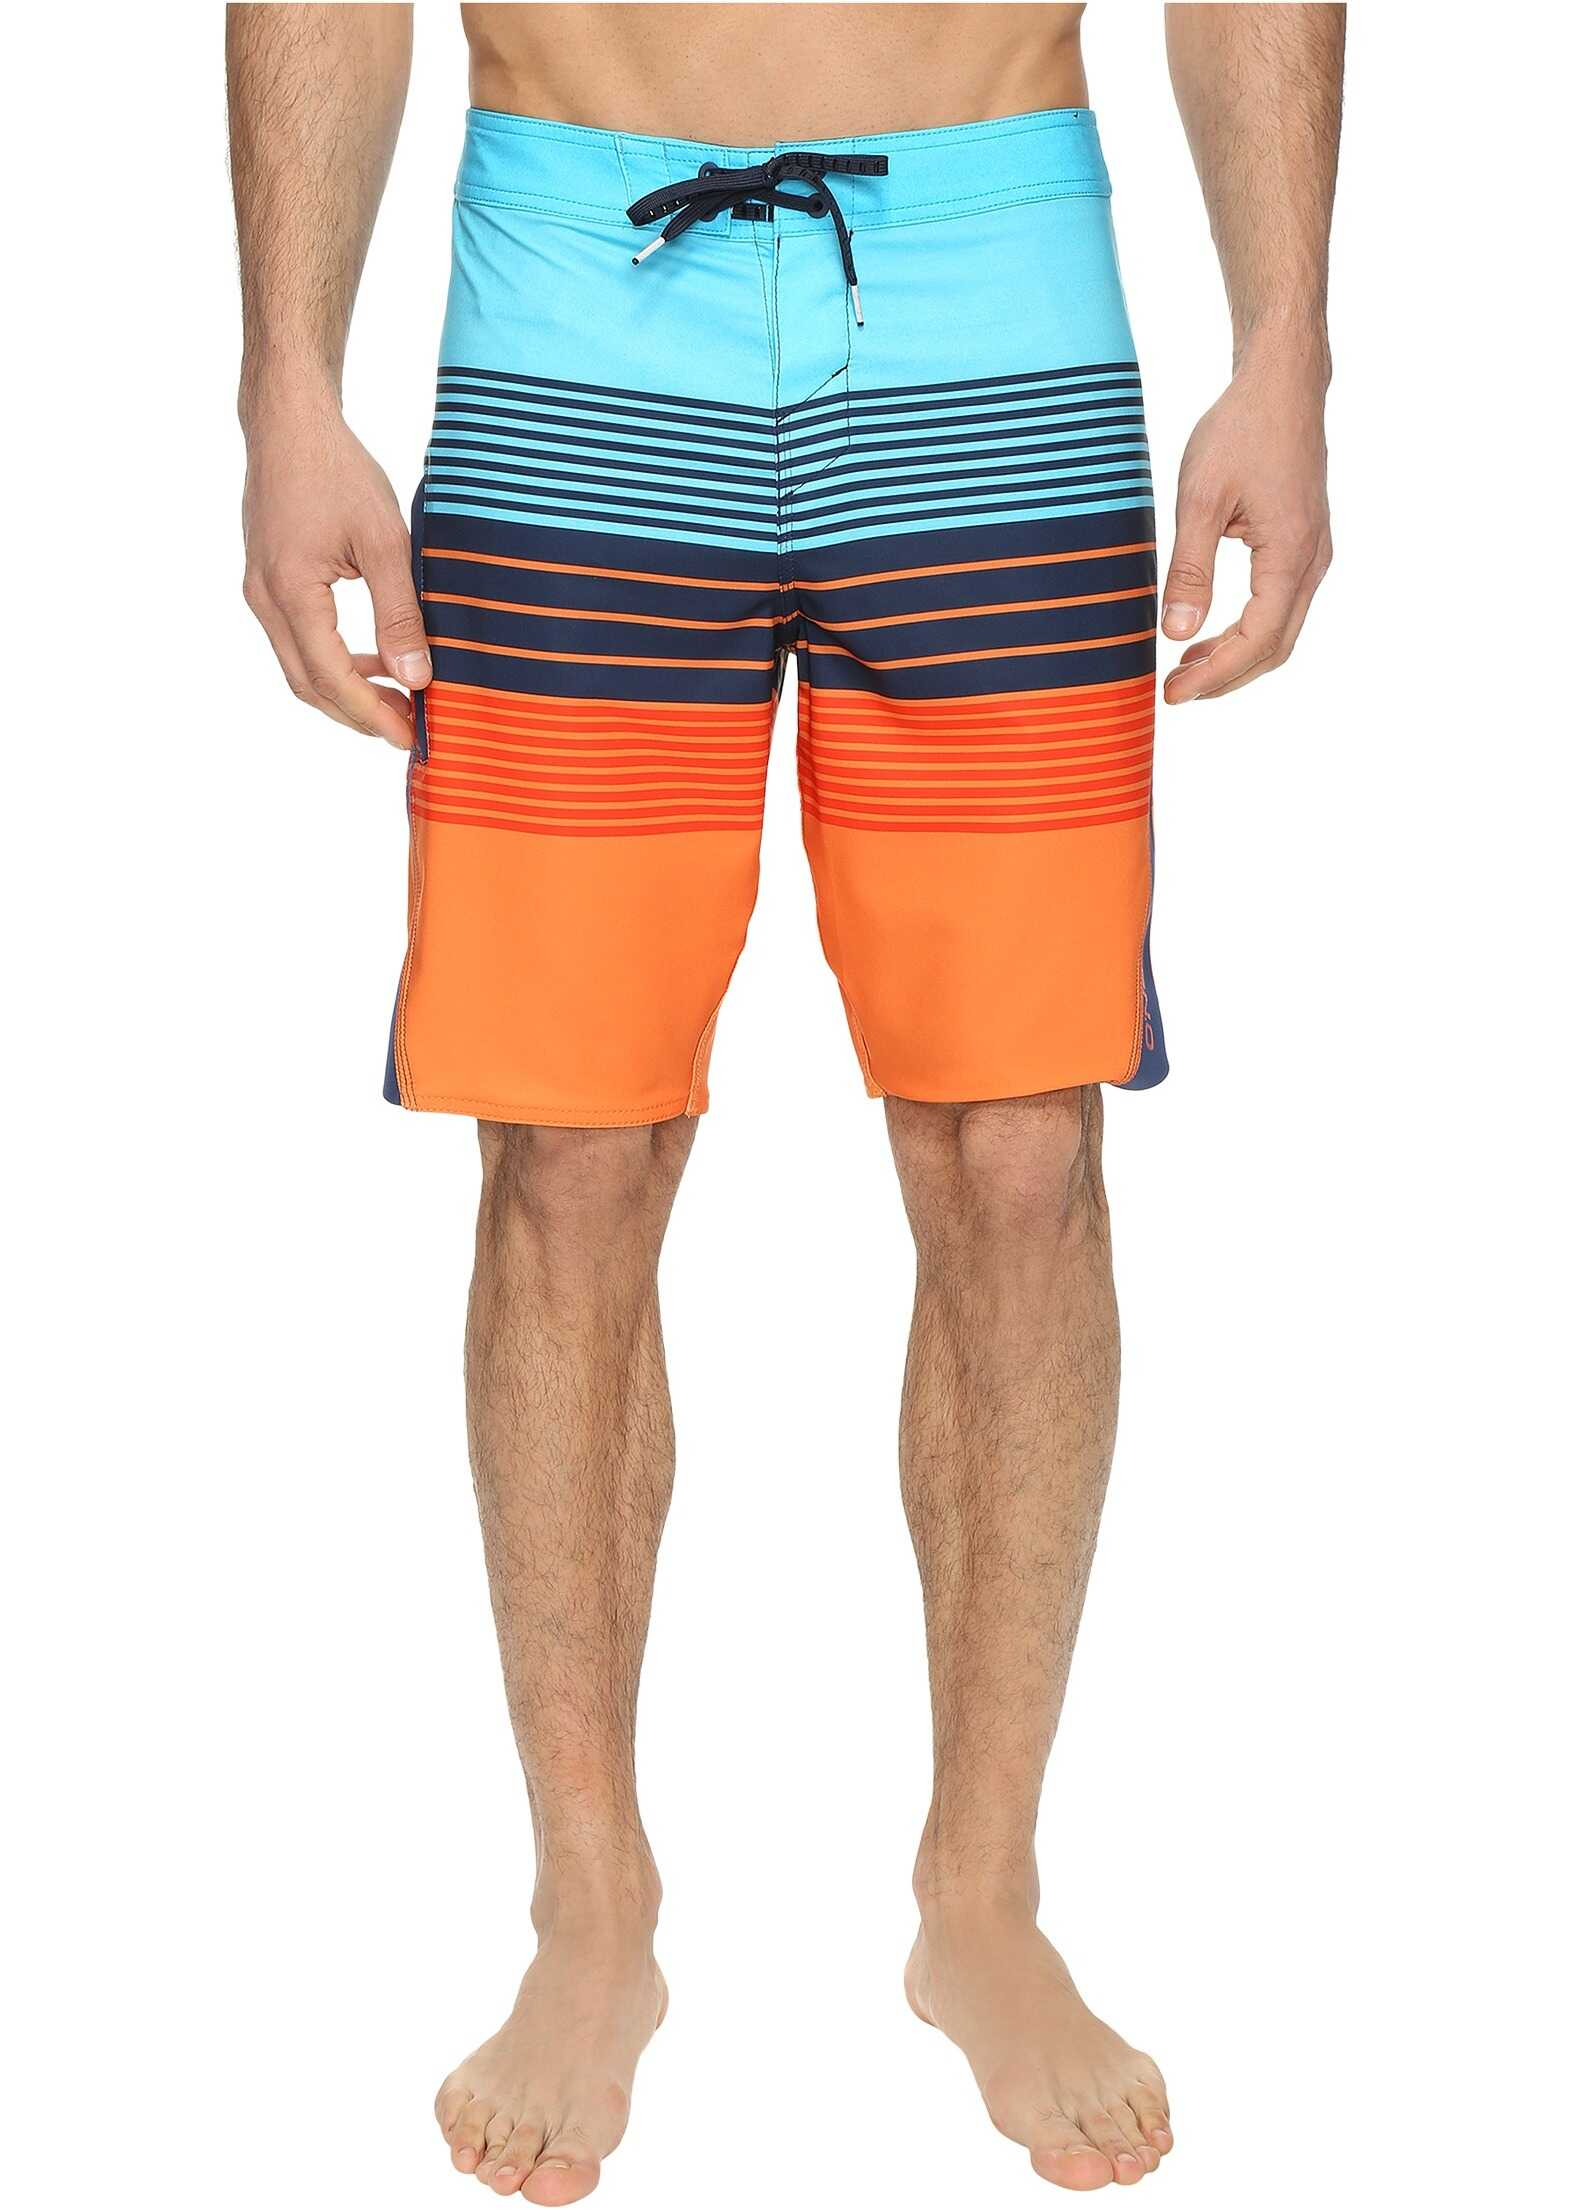 ONeill Superfreak Status Superfreak Series Boardshorts Orange